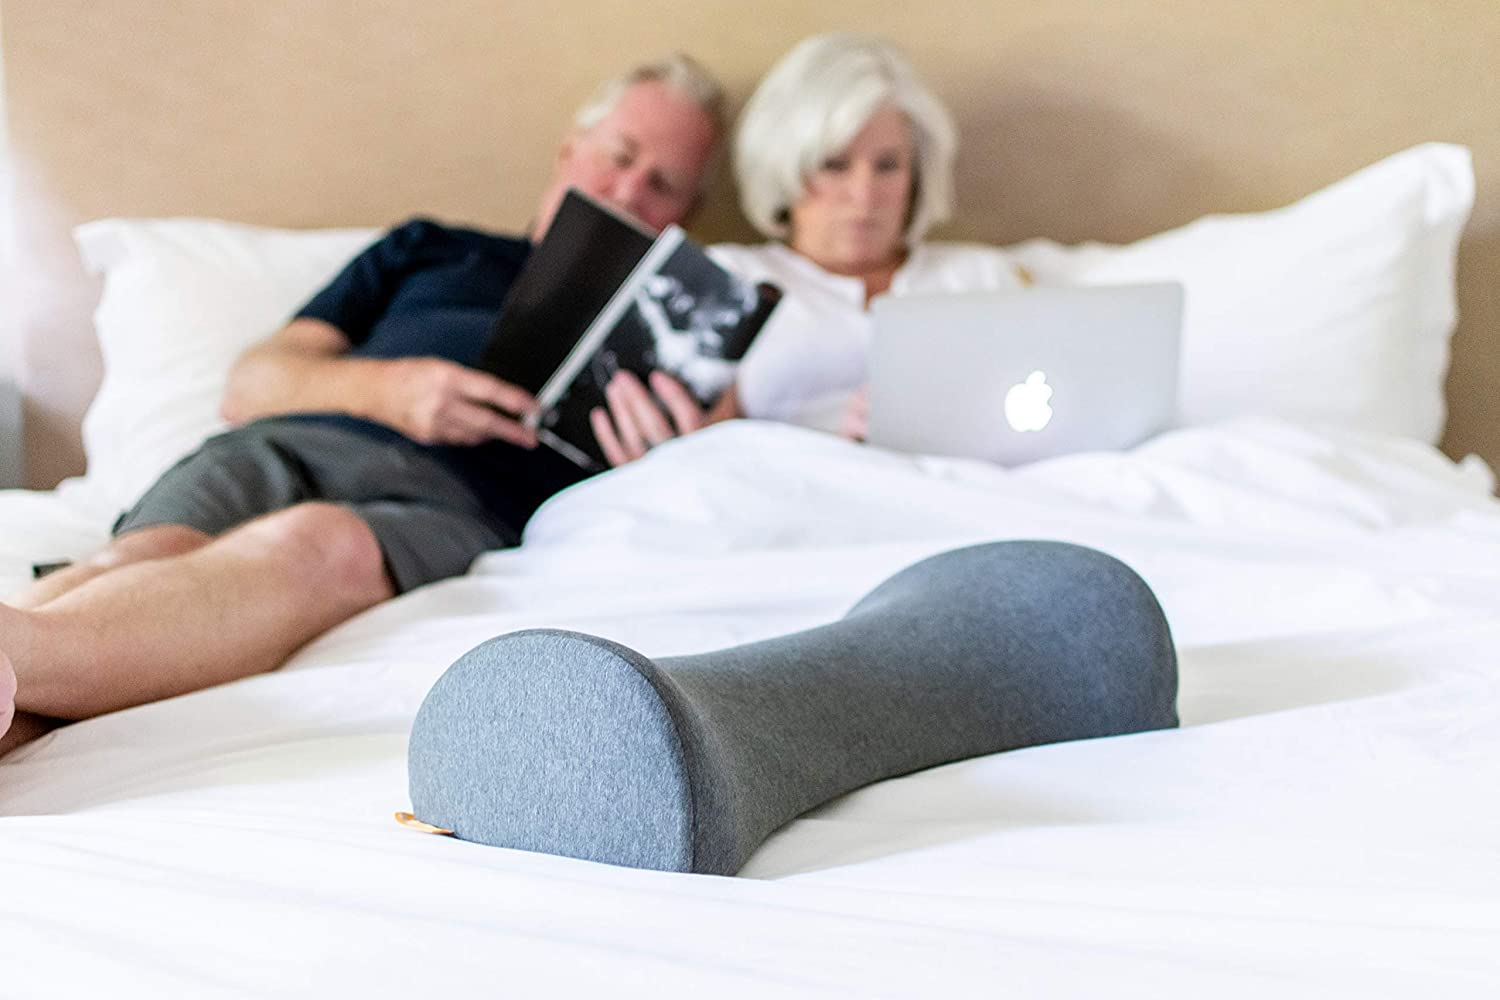 Improves Posture /& Alignment Low Back Pelvic Sciatica Pain Gently Releases Muscle Tightness /& Stress Scientifically Designed by Doctors Decompression Slumbar Lumbar Posture Pillow